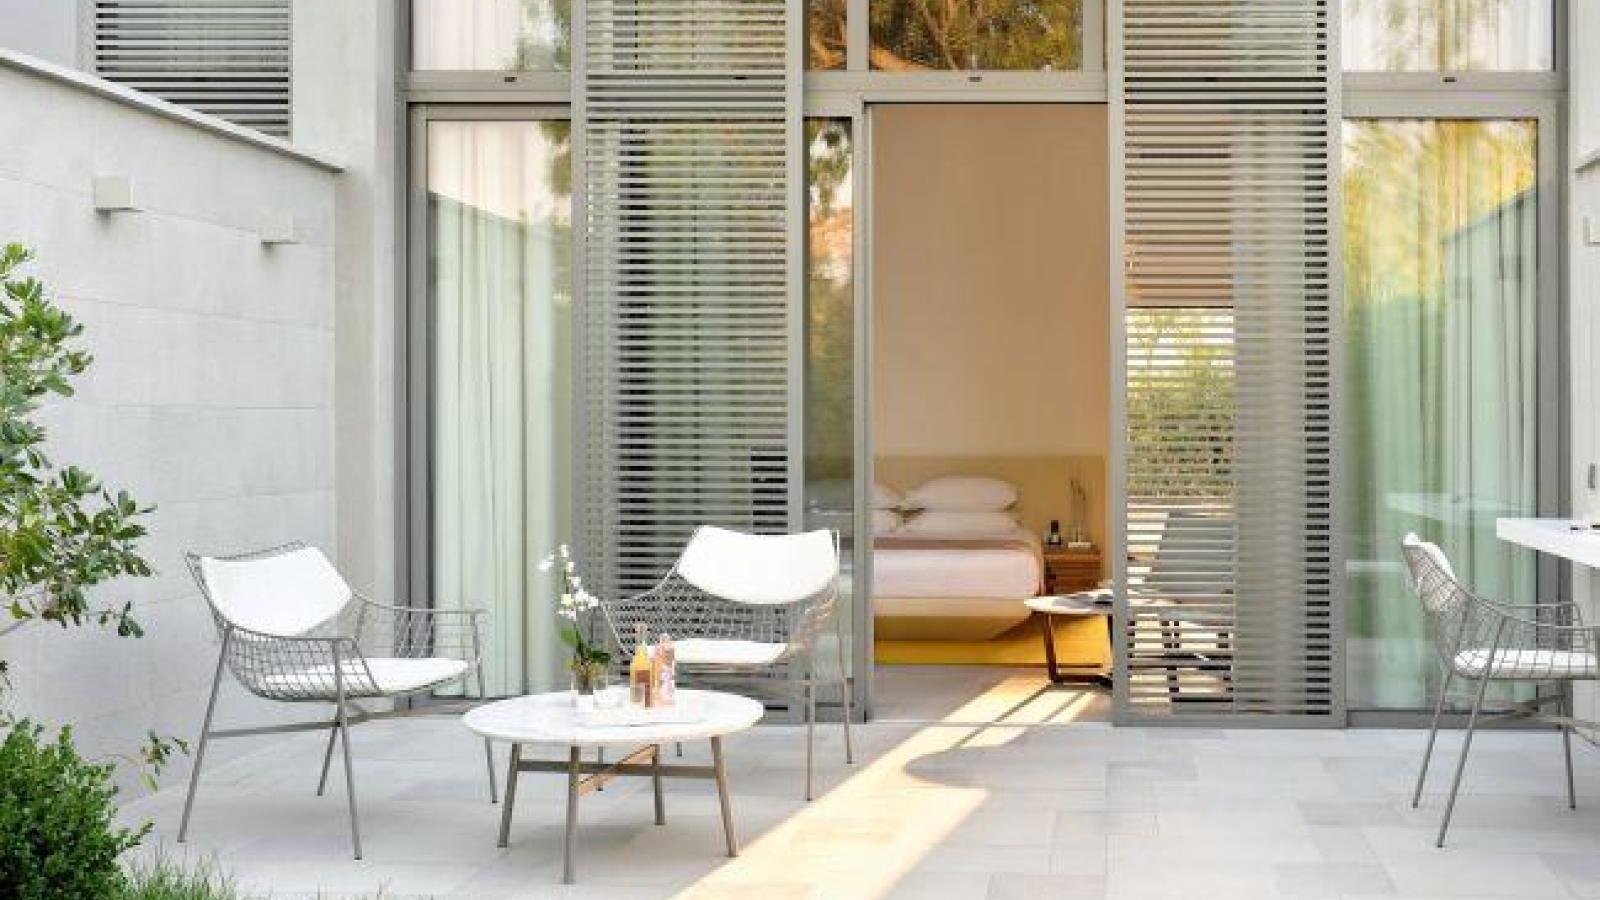 Design Hotel Saint Tropez offers supreme elegance and style